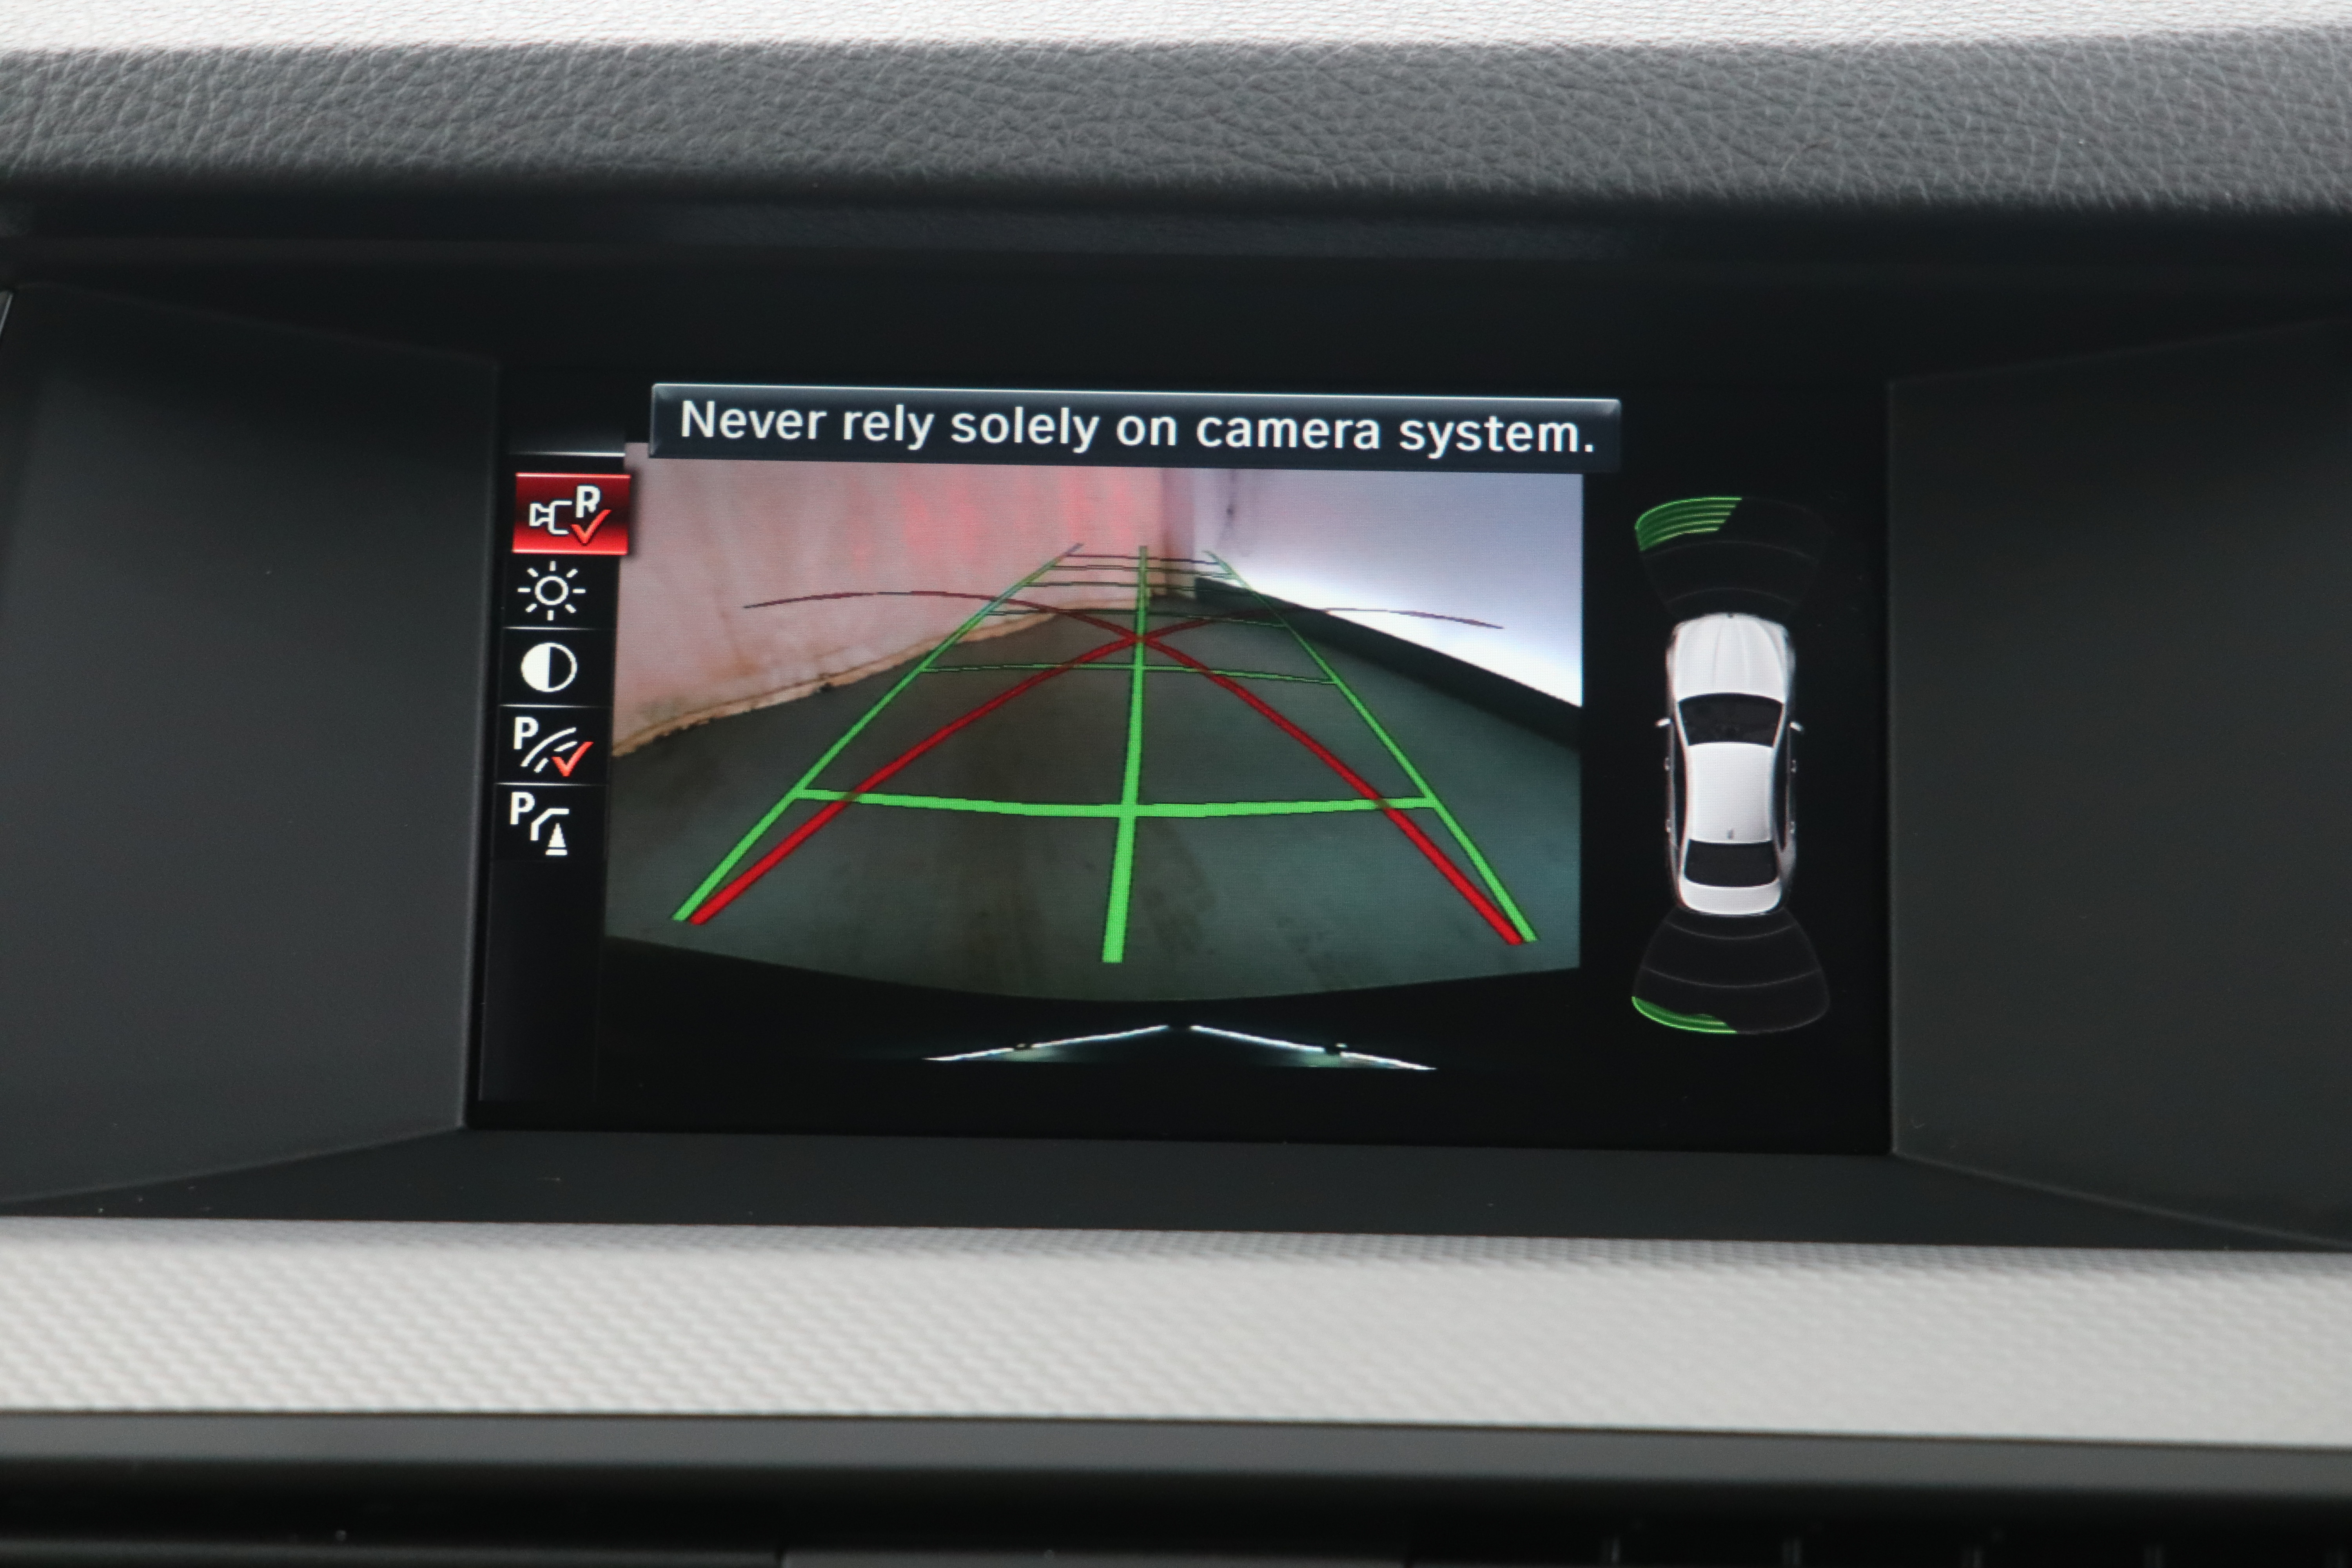 The car has a reversing camera to help park in tight spots.